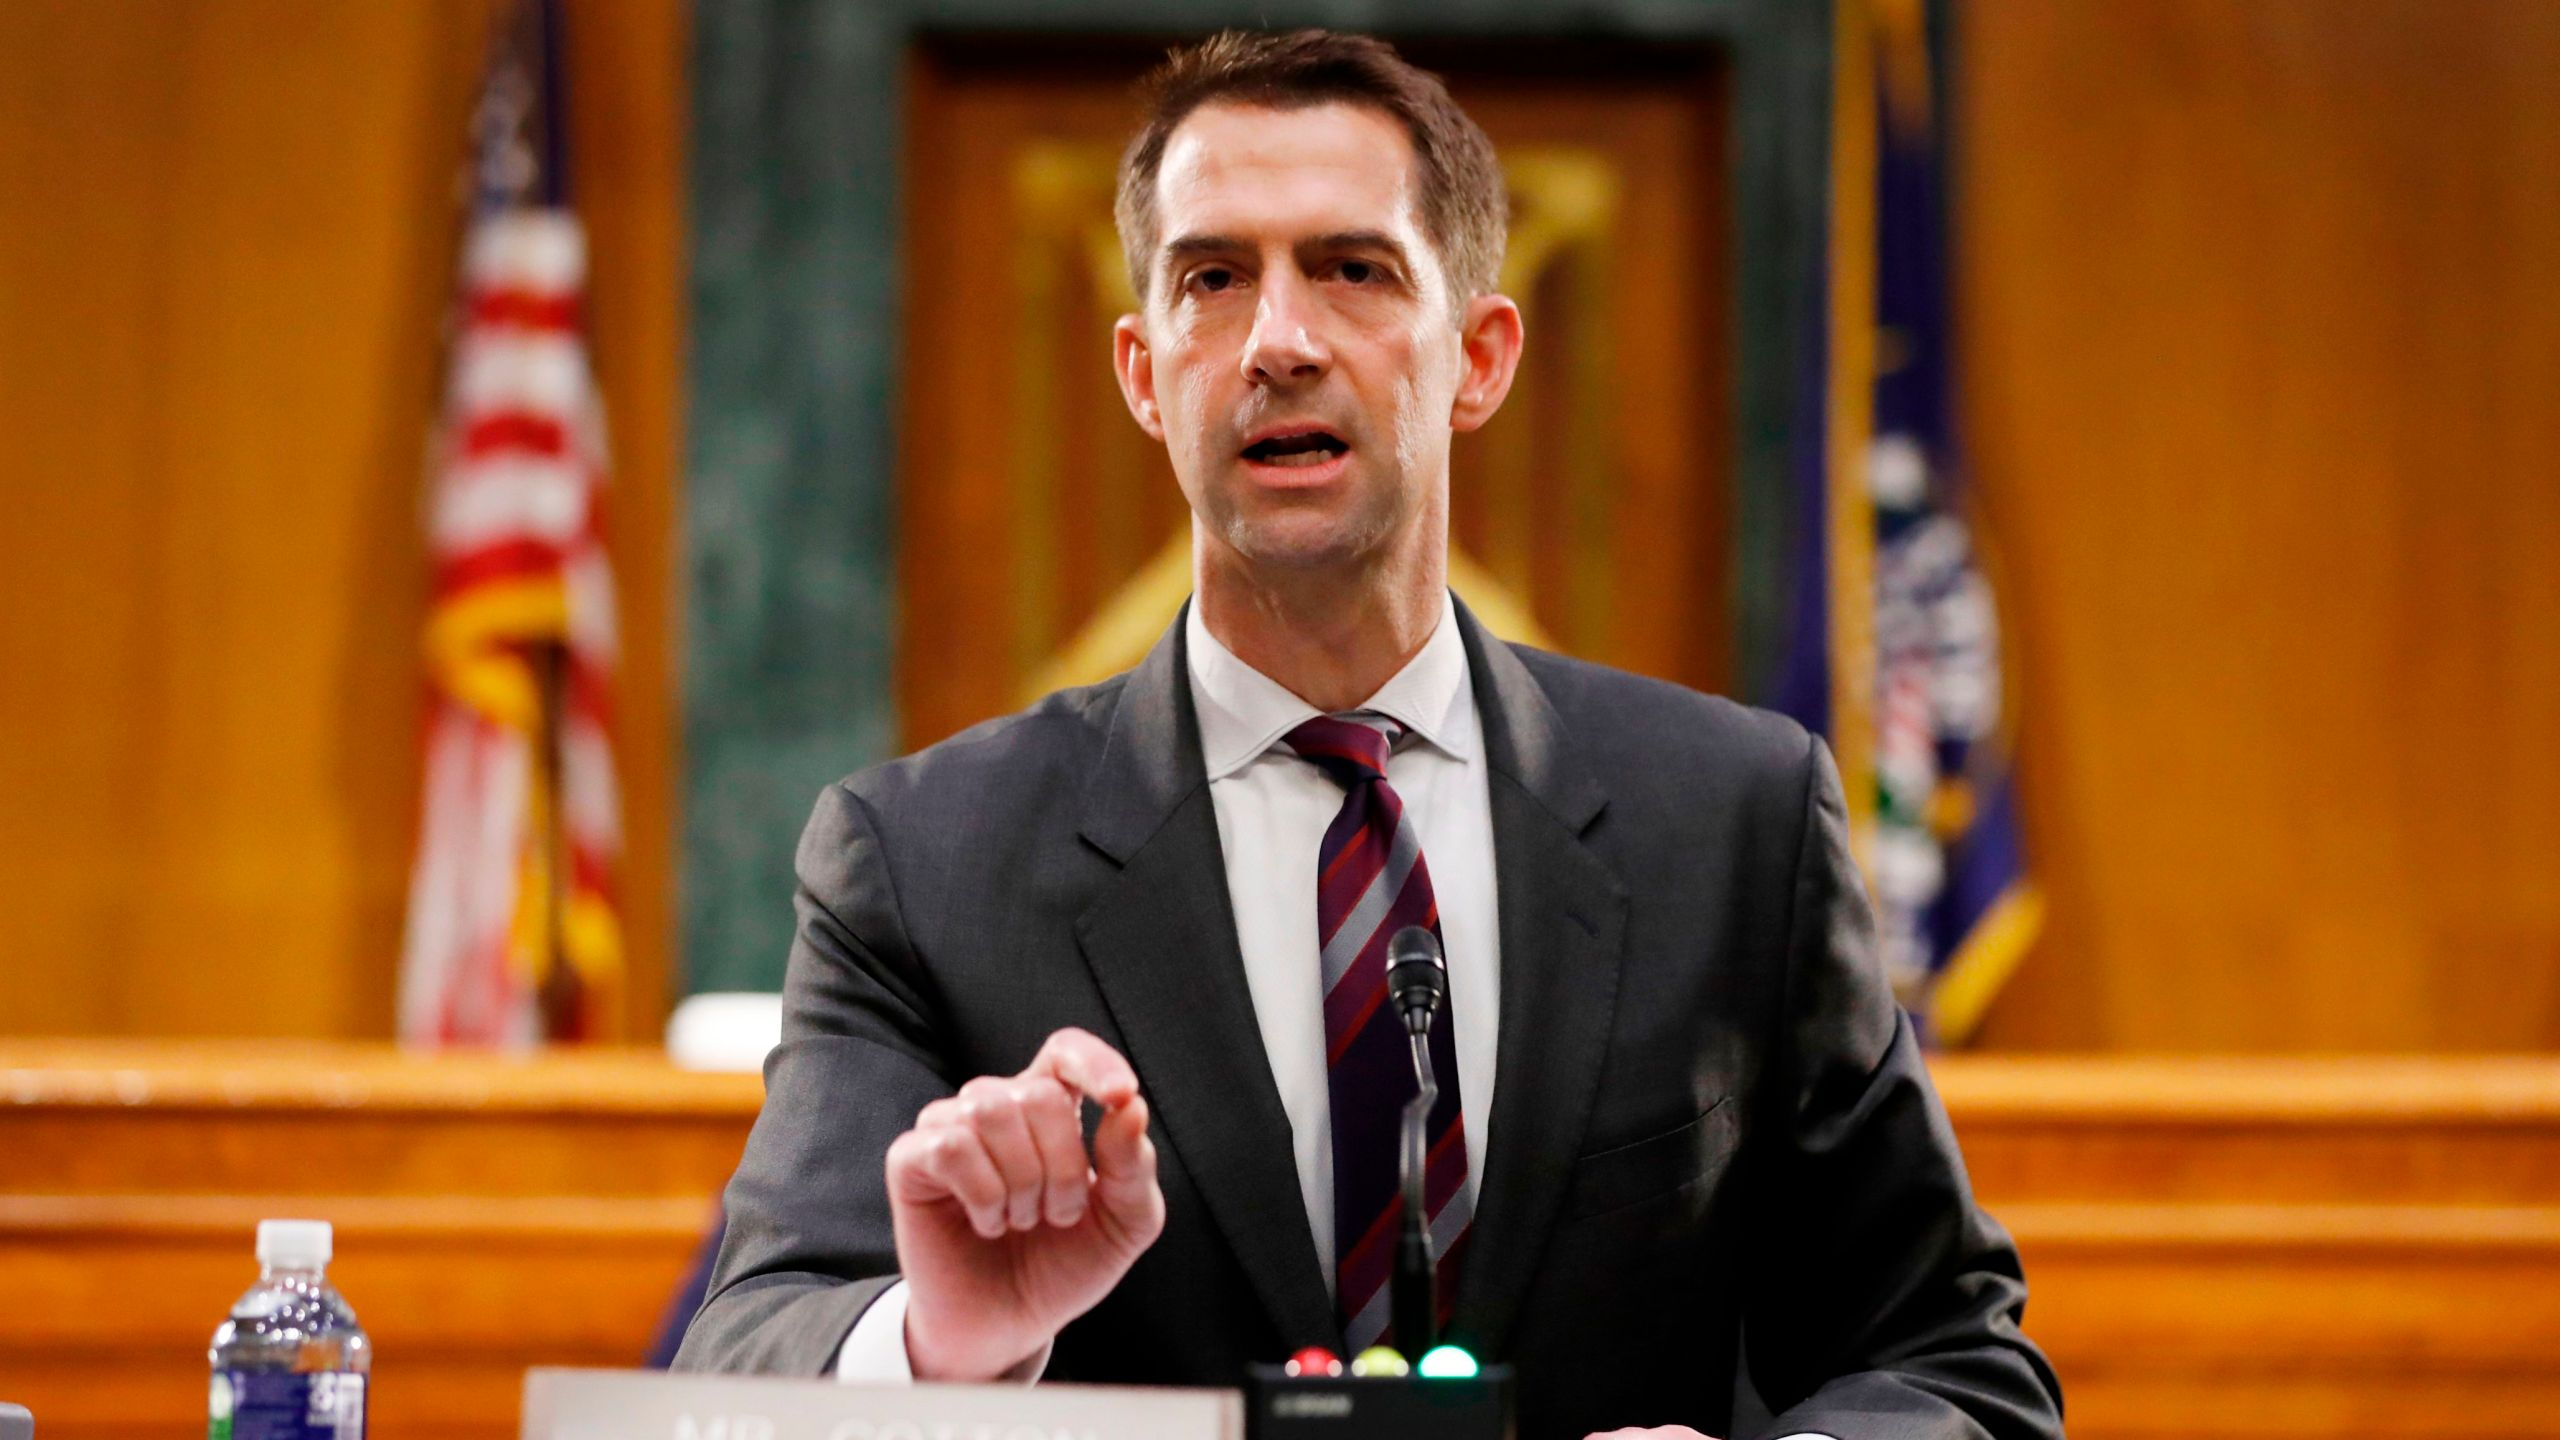 Sen. Tom Cotton speaks during a Senate Intelligence Committee nomination hearing for Rep. John Ratcliffe on Capitol Hill on May 5, 2020. (ANDREW HARNIK / AFP / Getty Images)